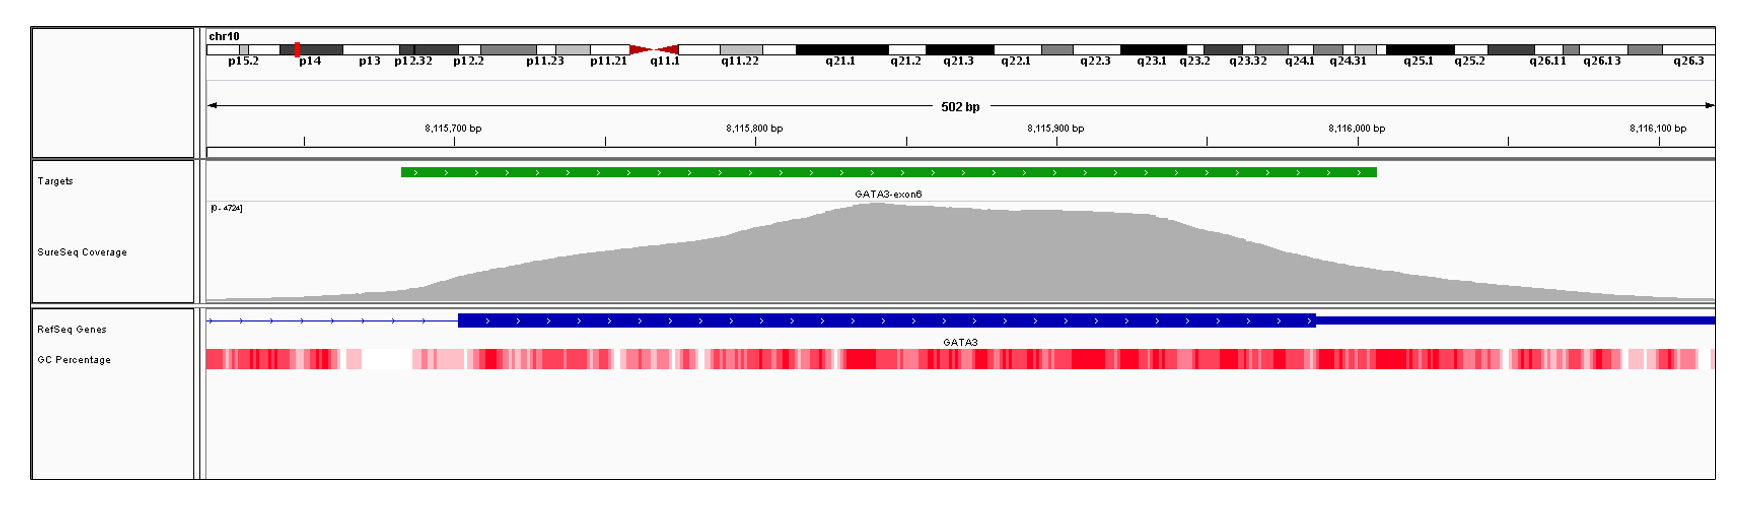 GATA3 Exon 6 (hg19 chr10:8115702-8117164). Depth of coverage per base (grey). Targeted region (green). Gene coding region as defined by RefSeq (blue). GC percentage (red). Image